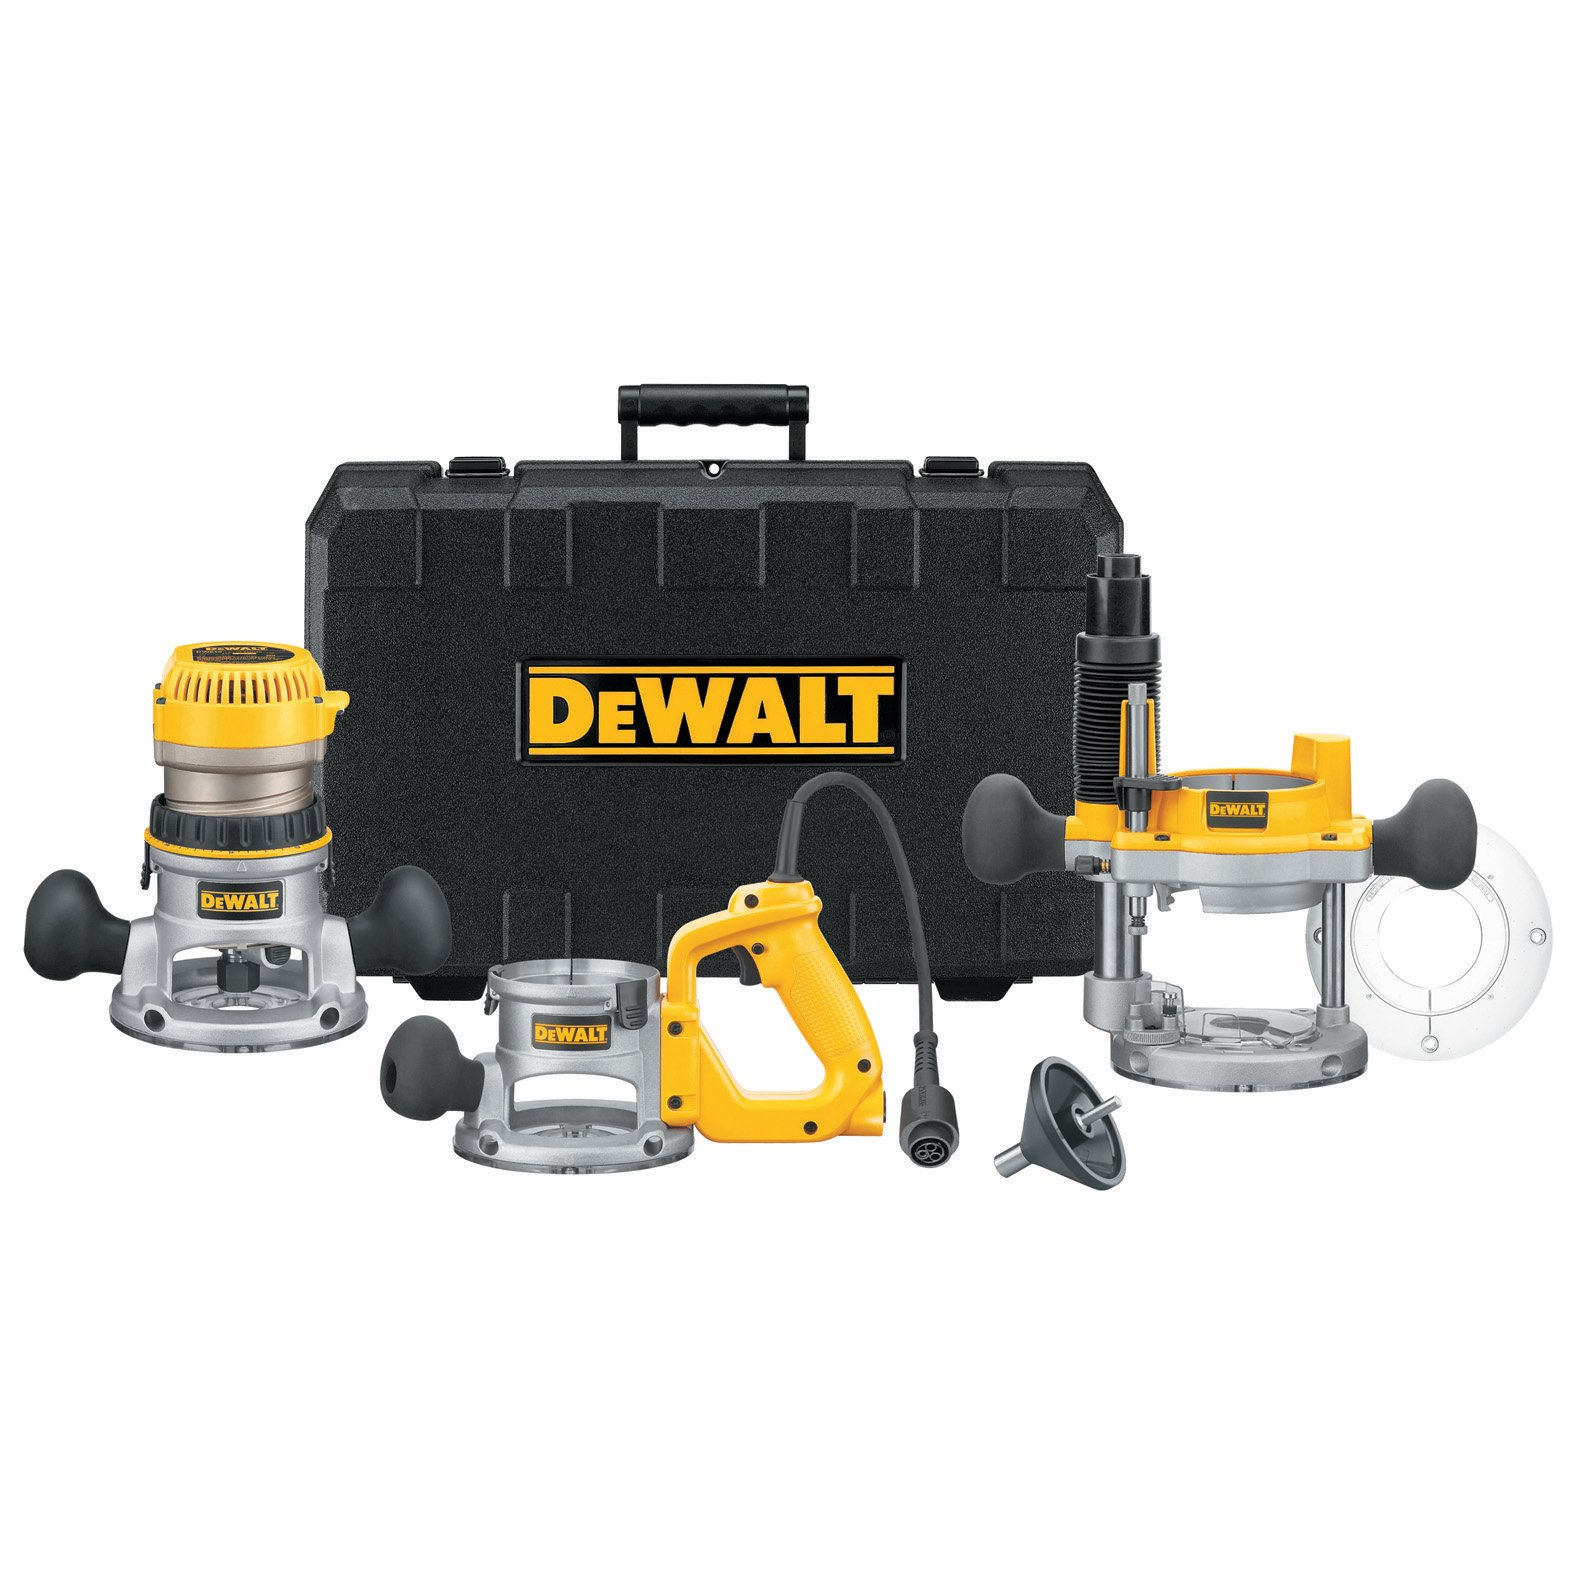 Dewalt dw618pk router kit best wood router best router table dewalt dw618pk 12 amp 2 14 hp plunge and fixed base greentooth Images